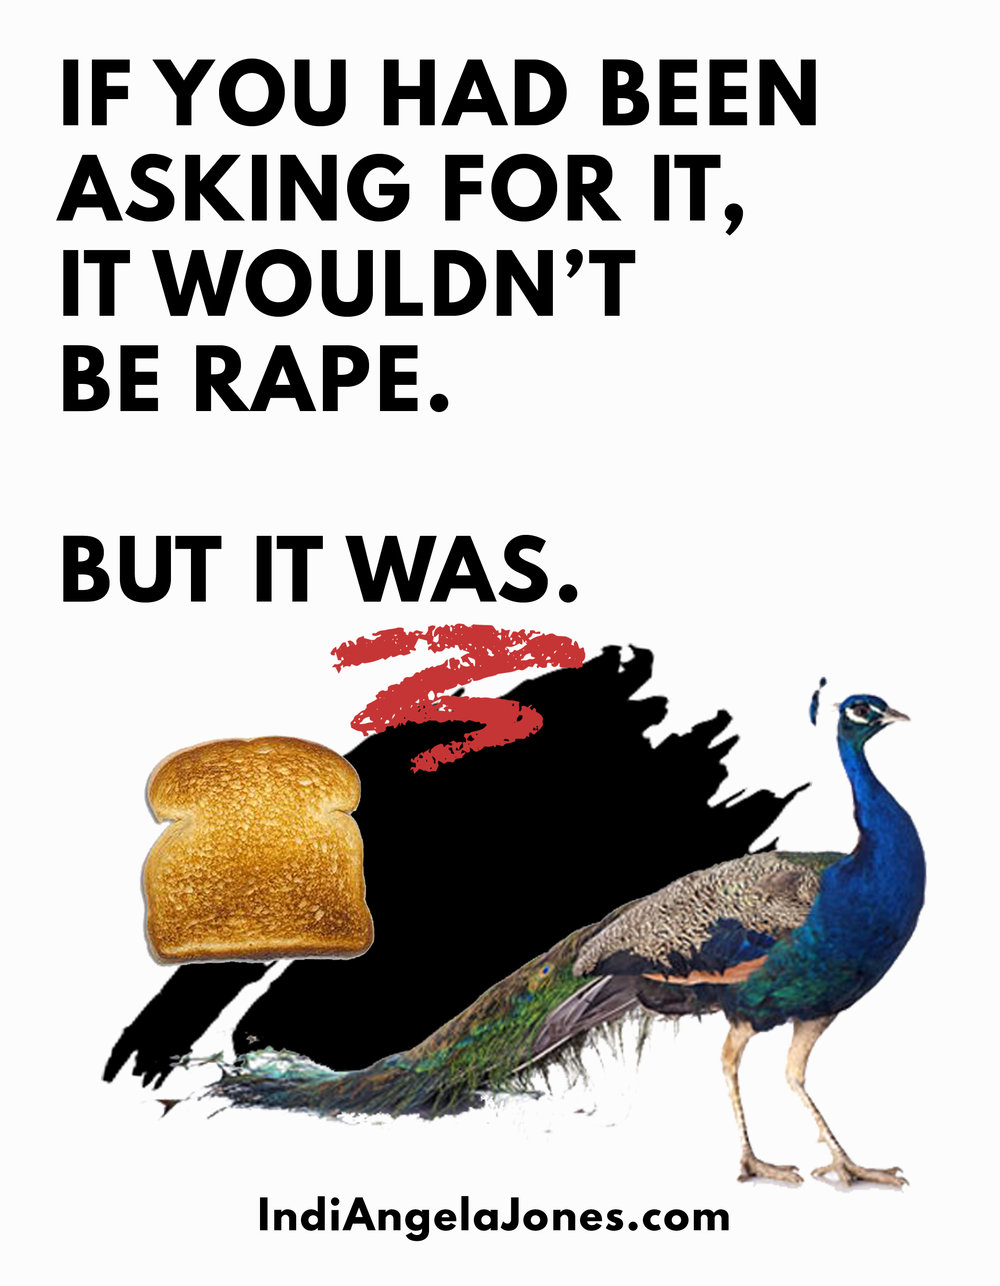 You were not asking to be raped.